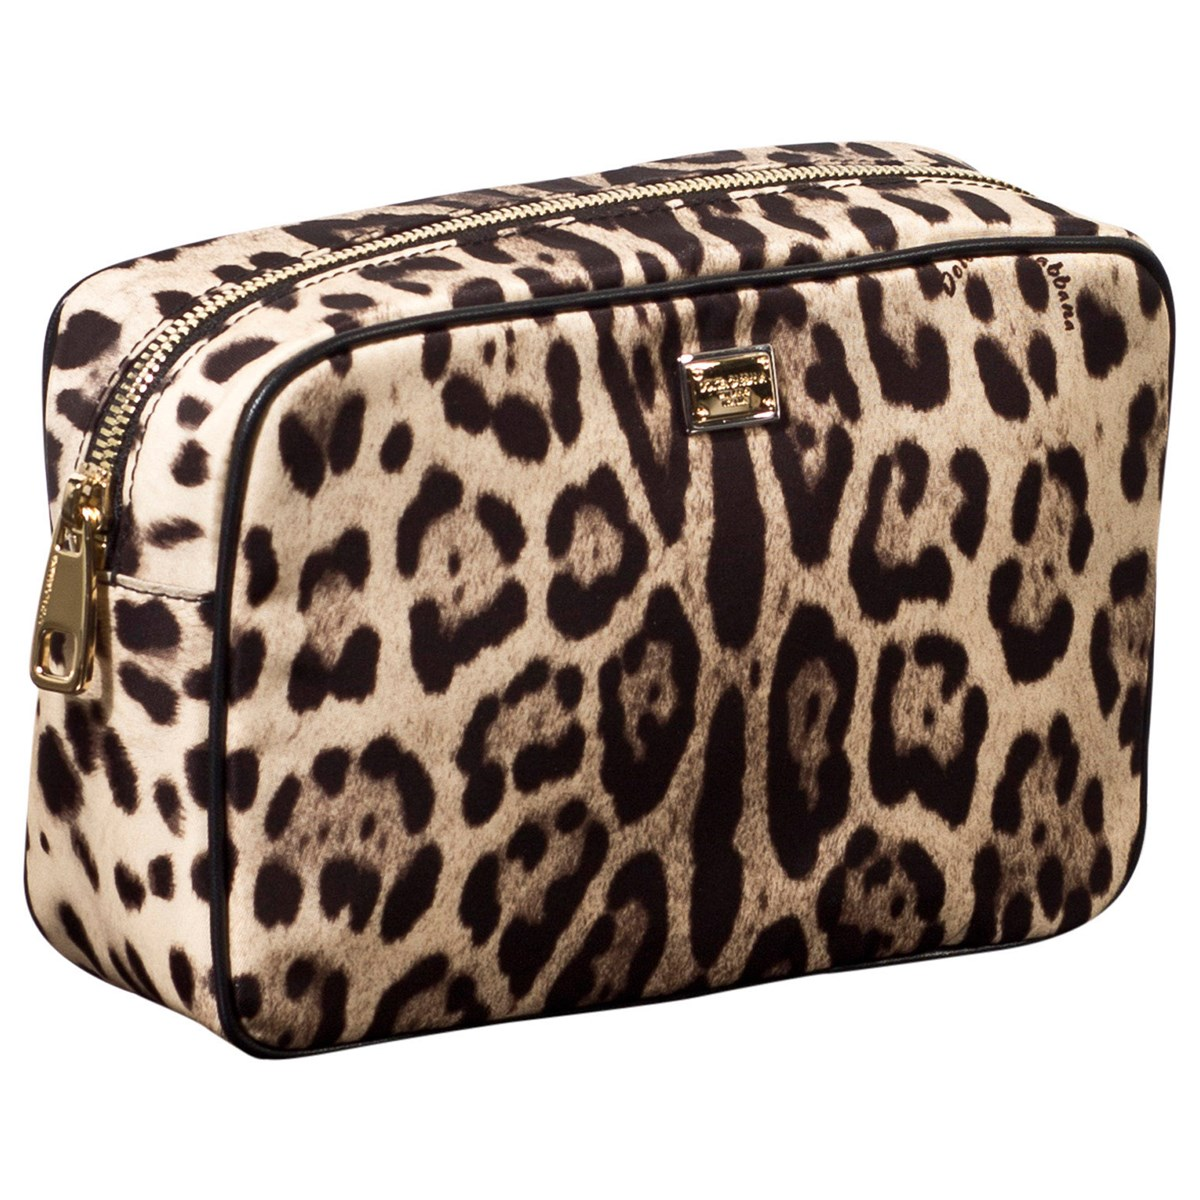 8d95efa373 Dolce   Gabbana Leopard Print Changing Bag with Washbag and Mat ...